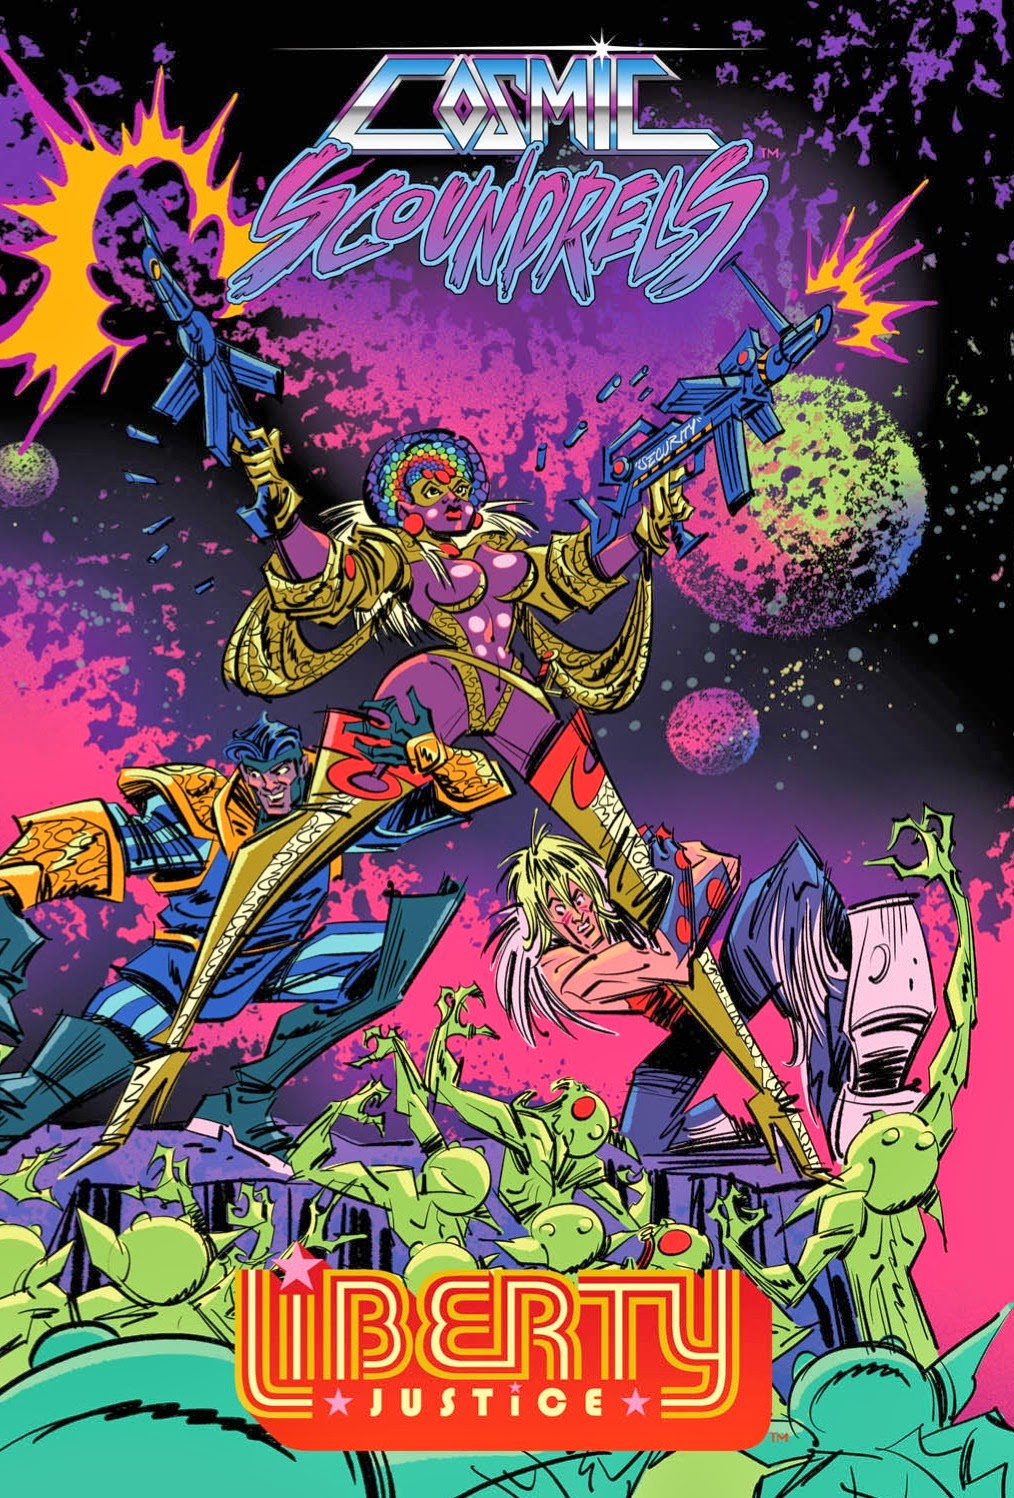 40 PAGE 11x17 COSMIC SCOUNDRELS/LIBERTY JUSTICE SUPER SIZED JAM BOOK!